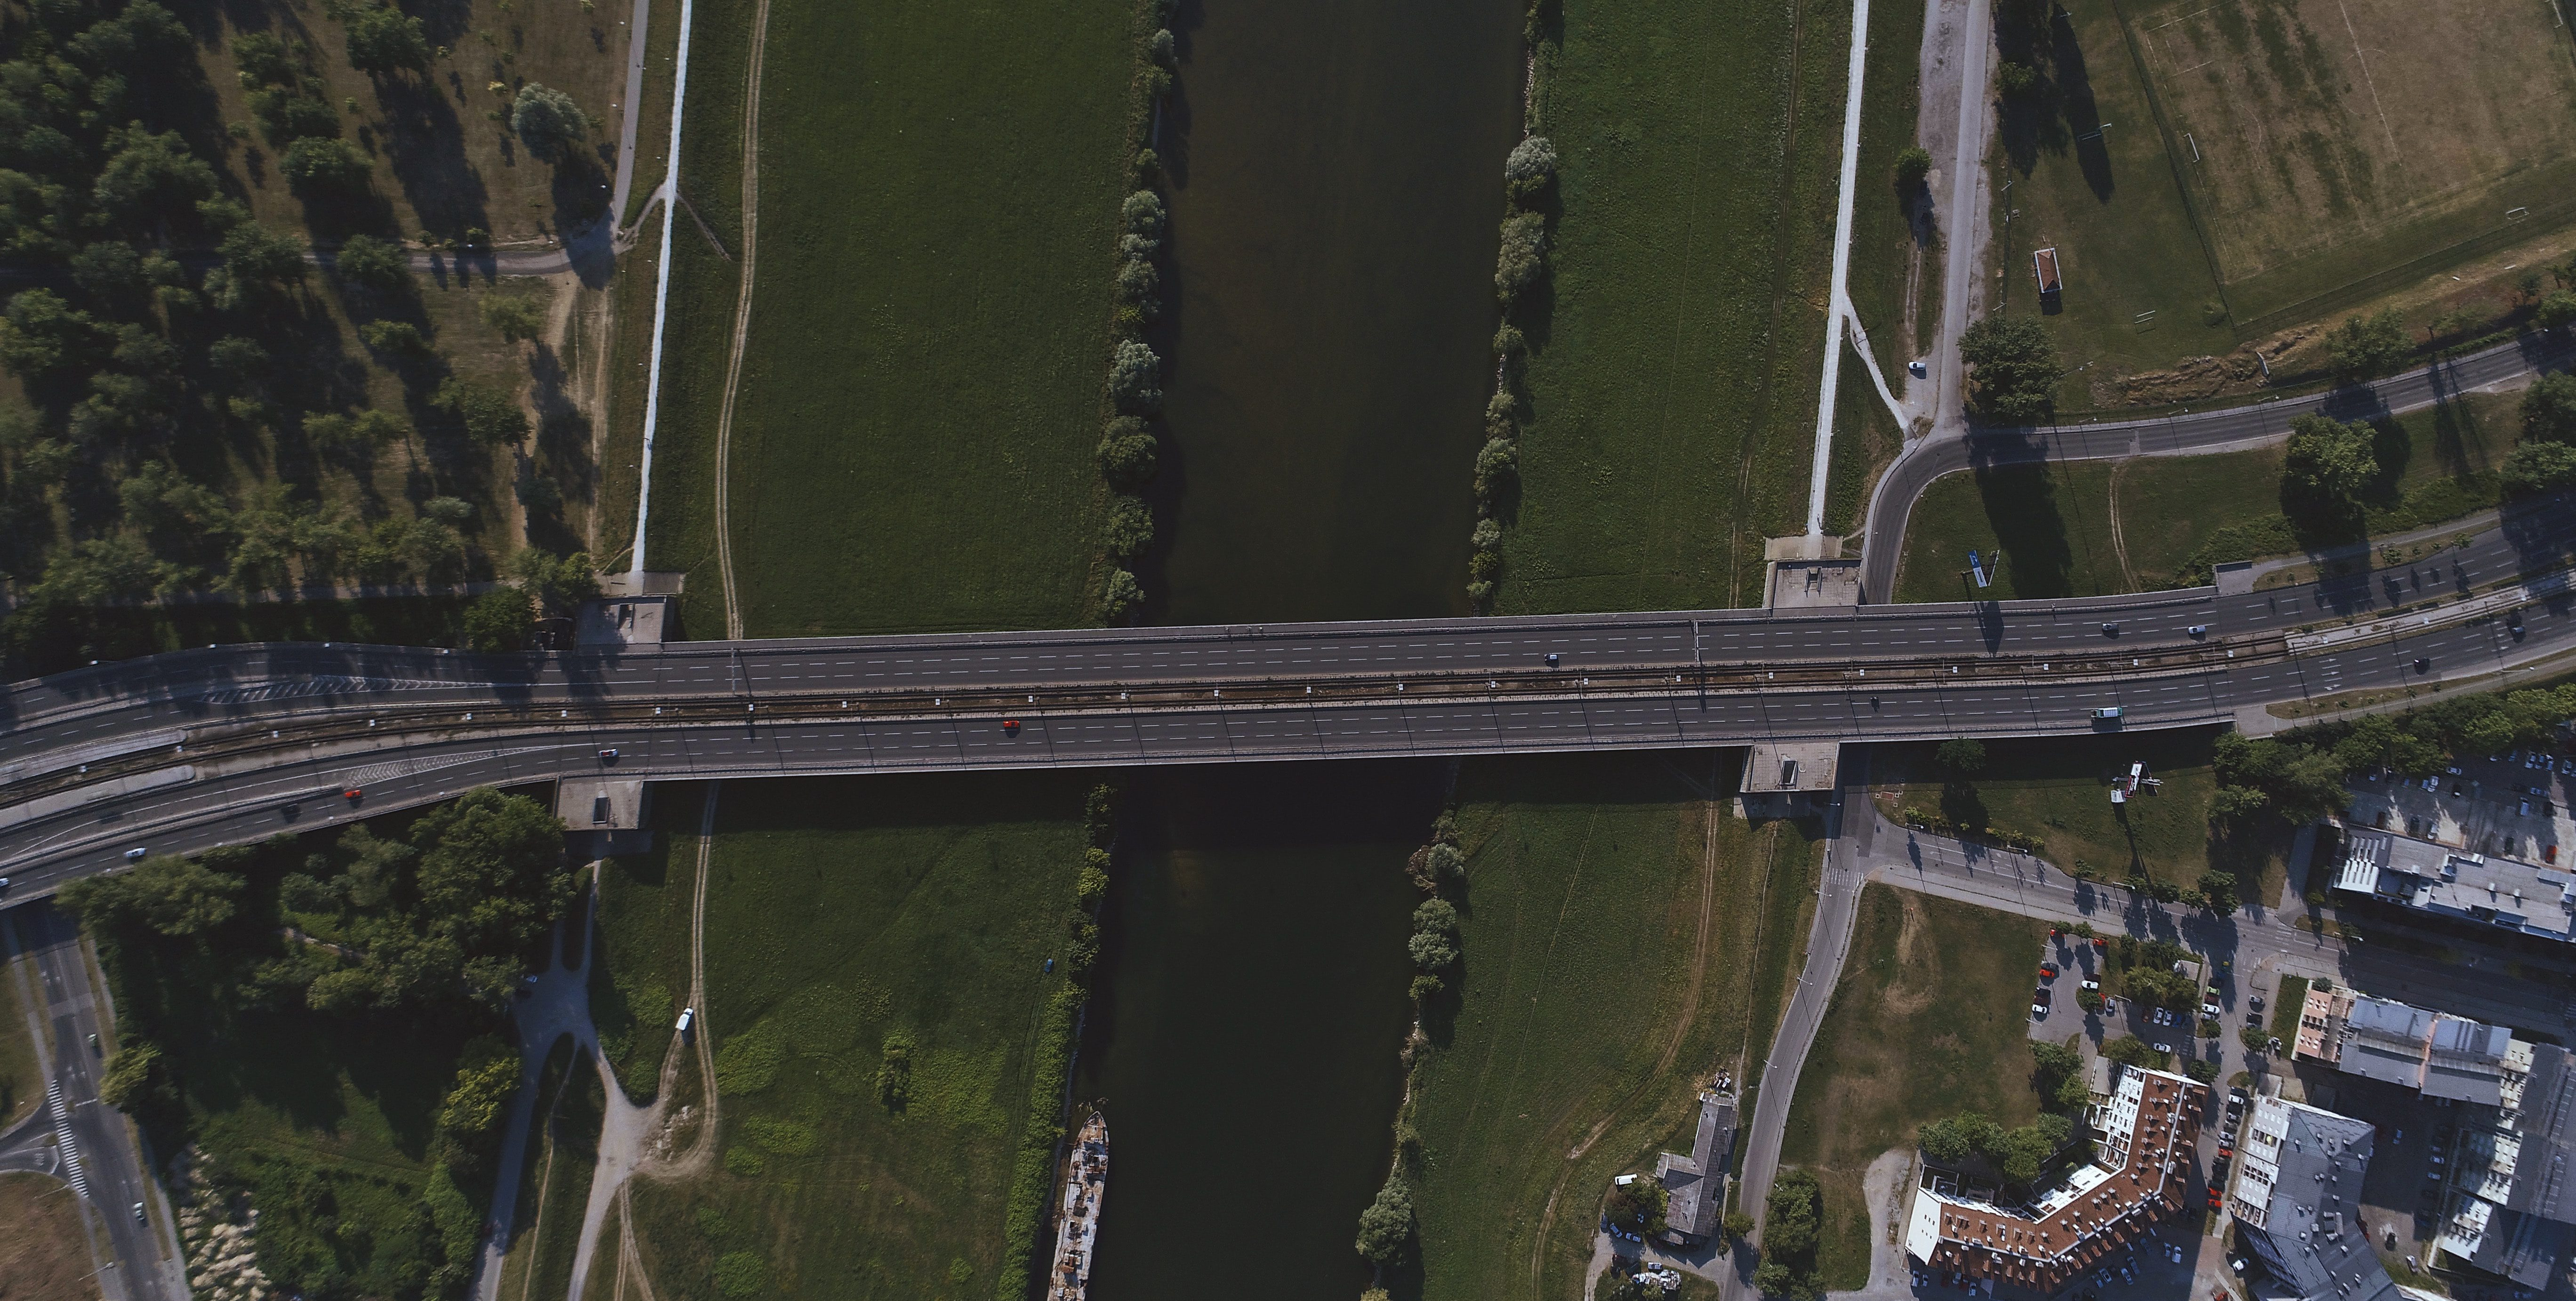 Photo of British bridge crossing canal or river